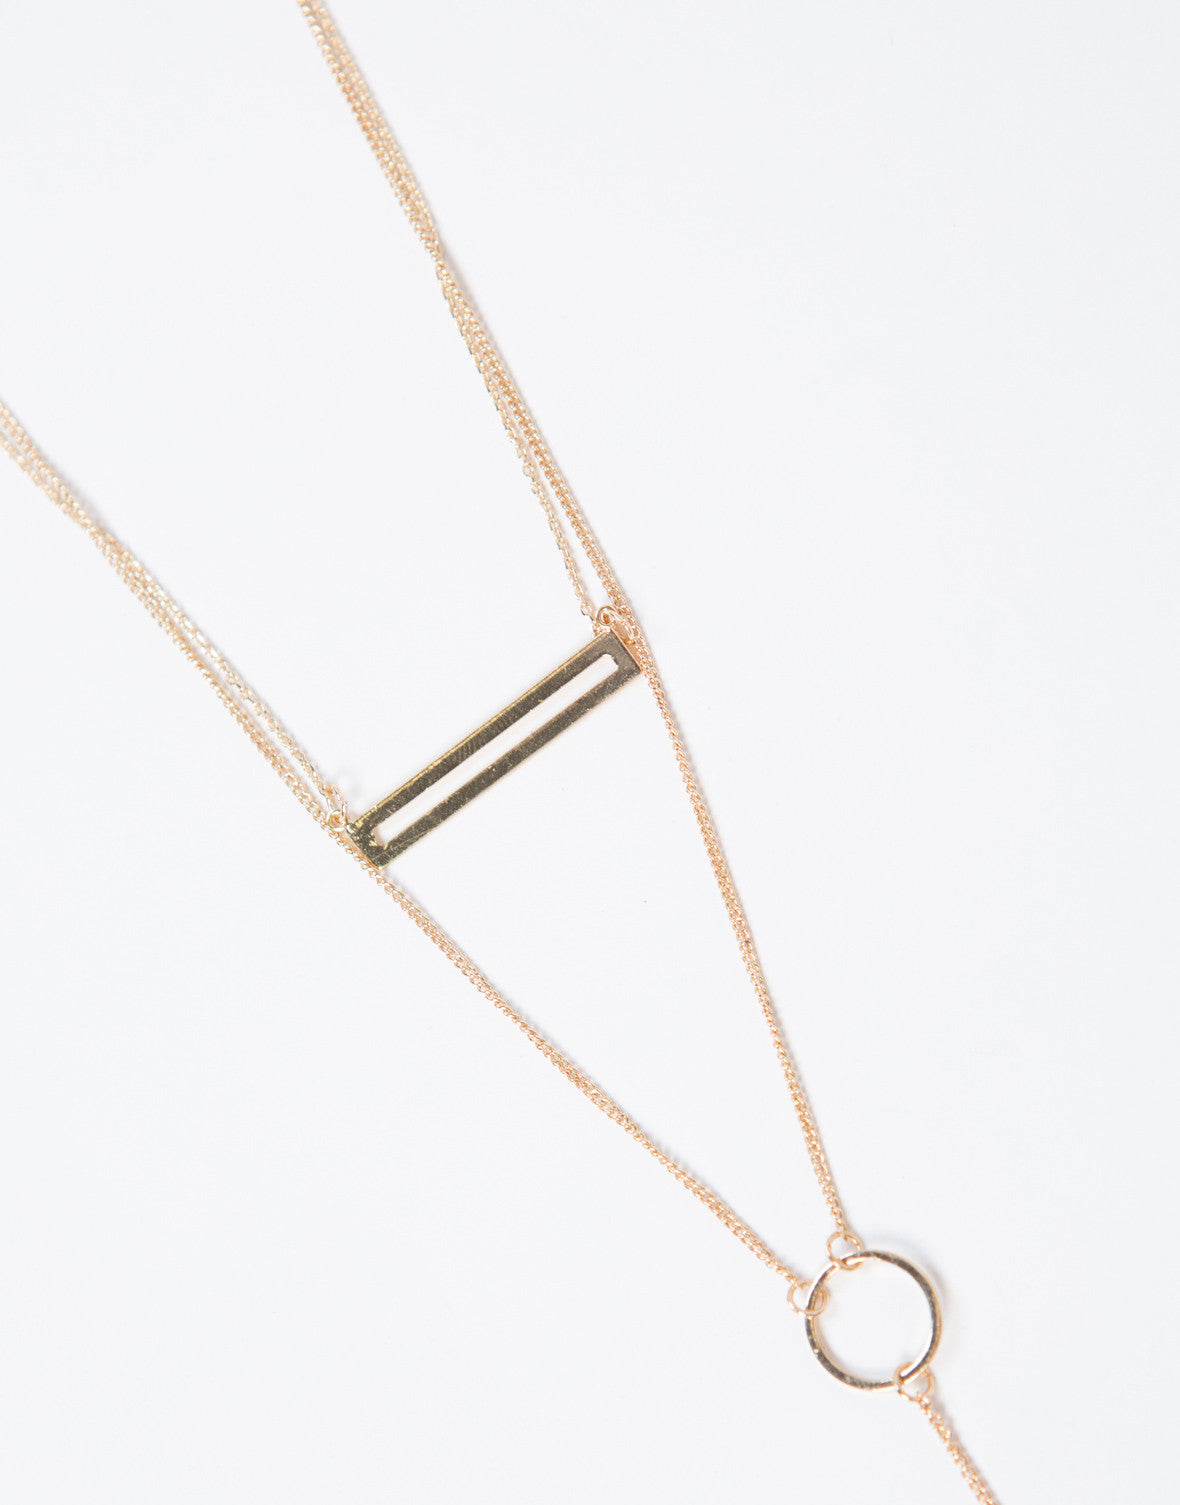 Stone Layered Dainty Necklace - 2020AVE